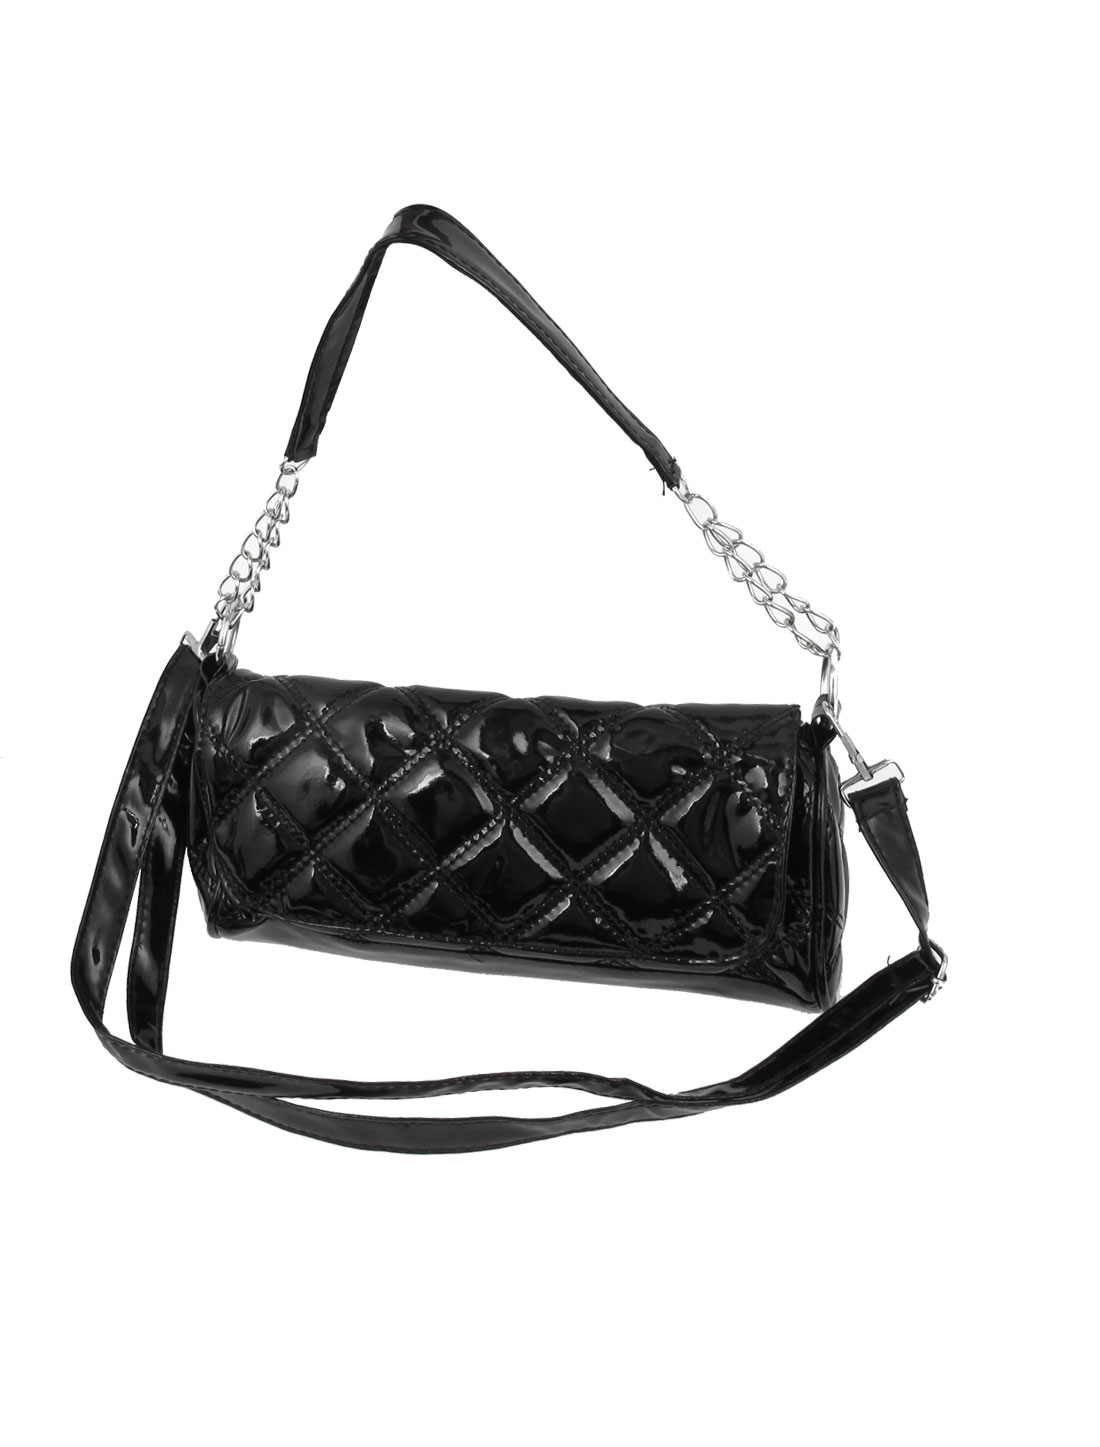 Lady Rhombus Pattern Faux Leather Strap Linked Metal Chain Purse Shoulder Bag